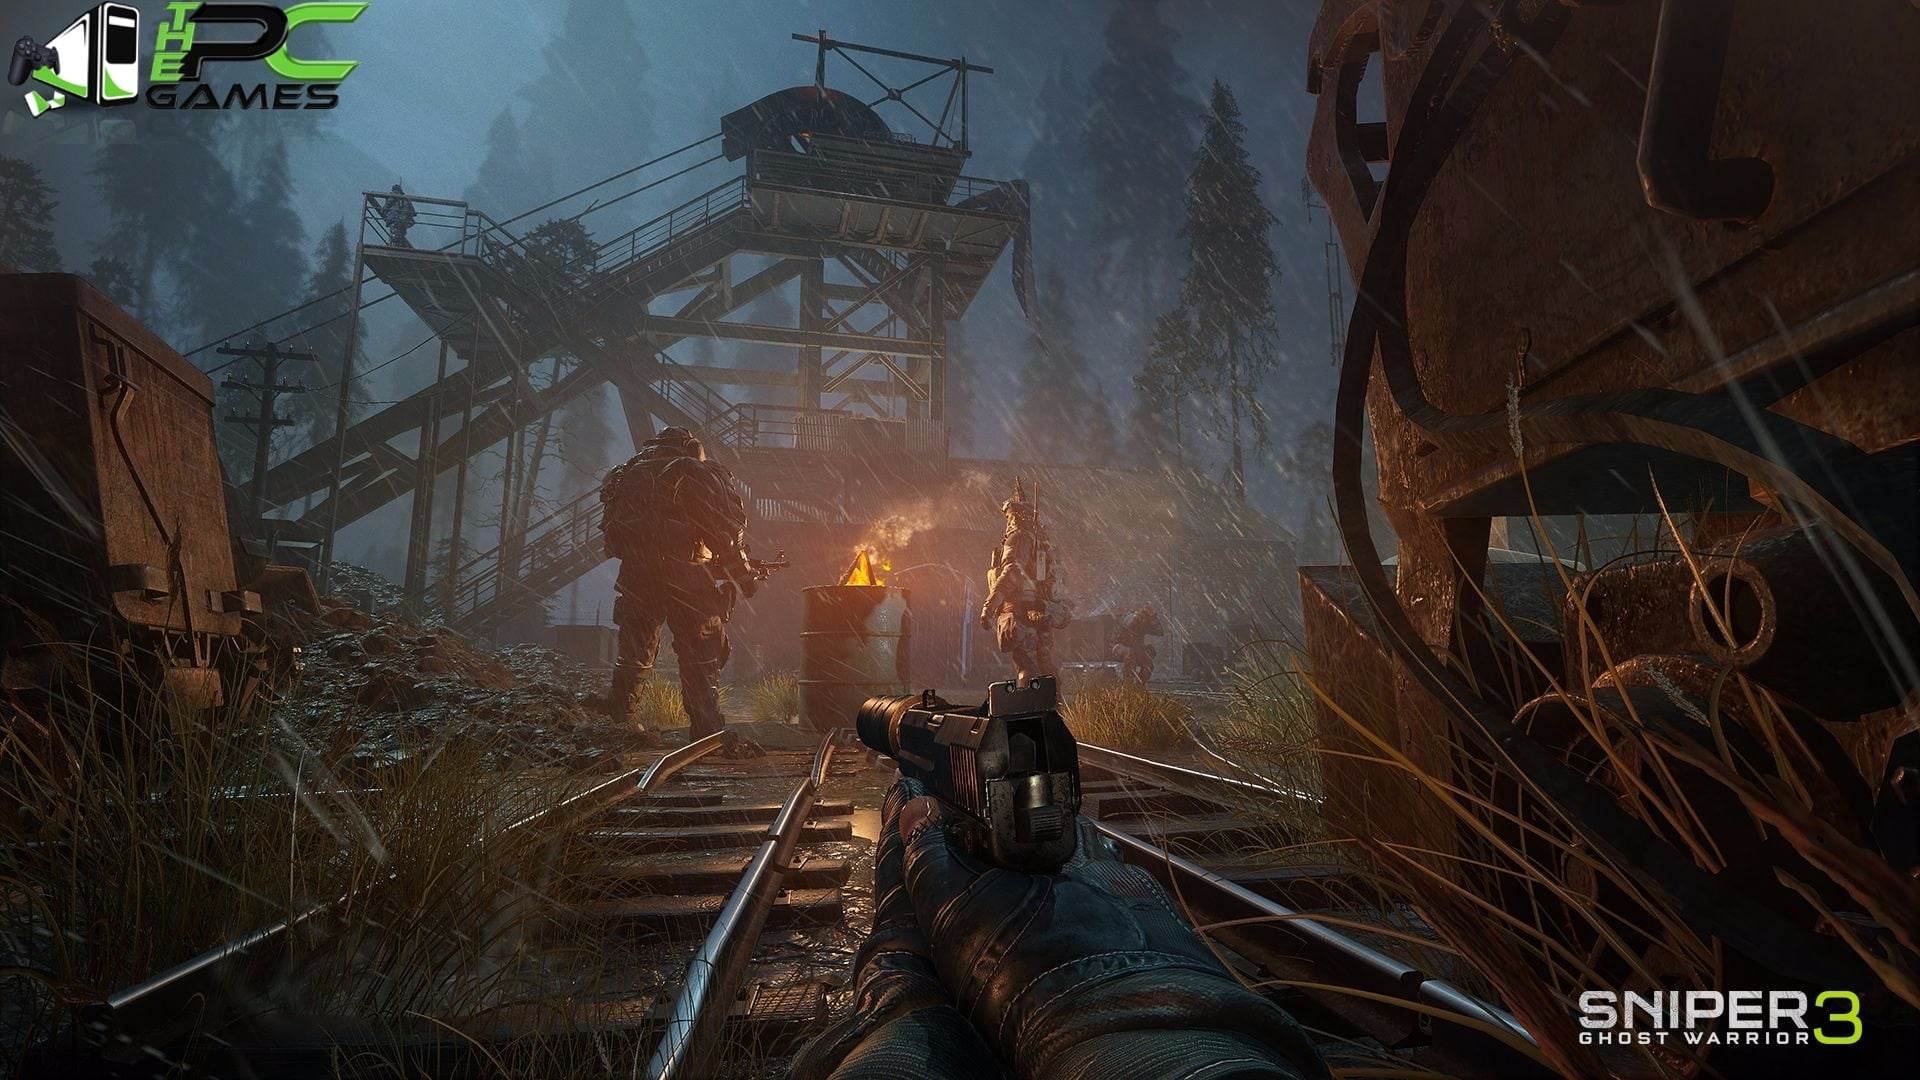 Sniper Ghost Warrior 3 PC game Screenshots: